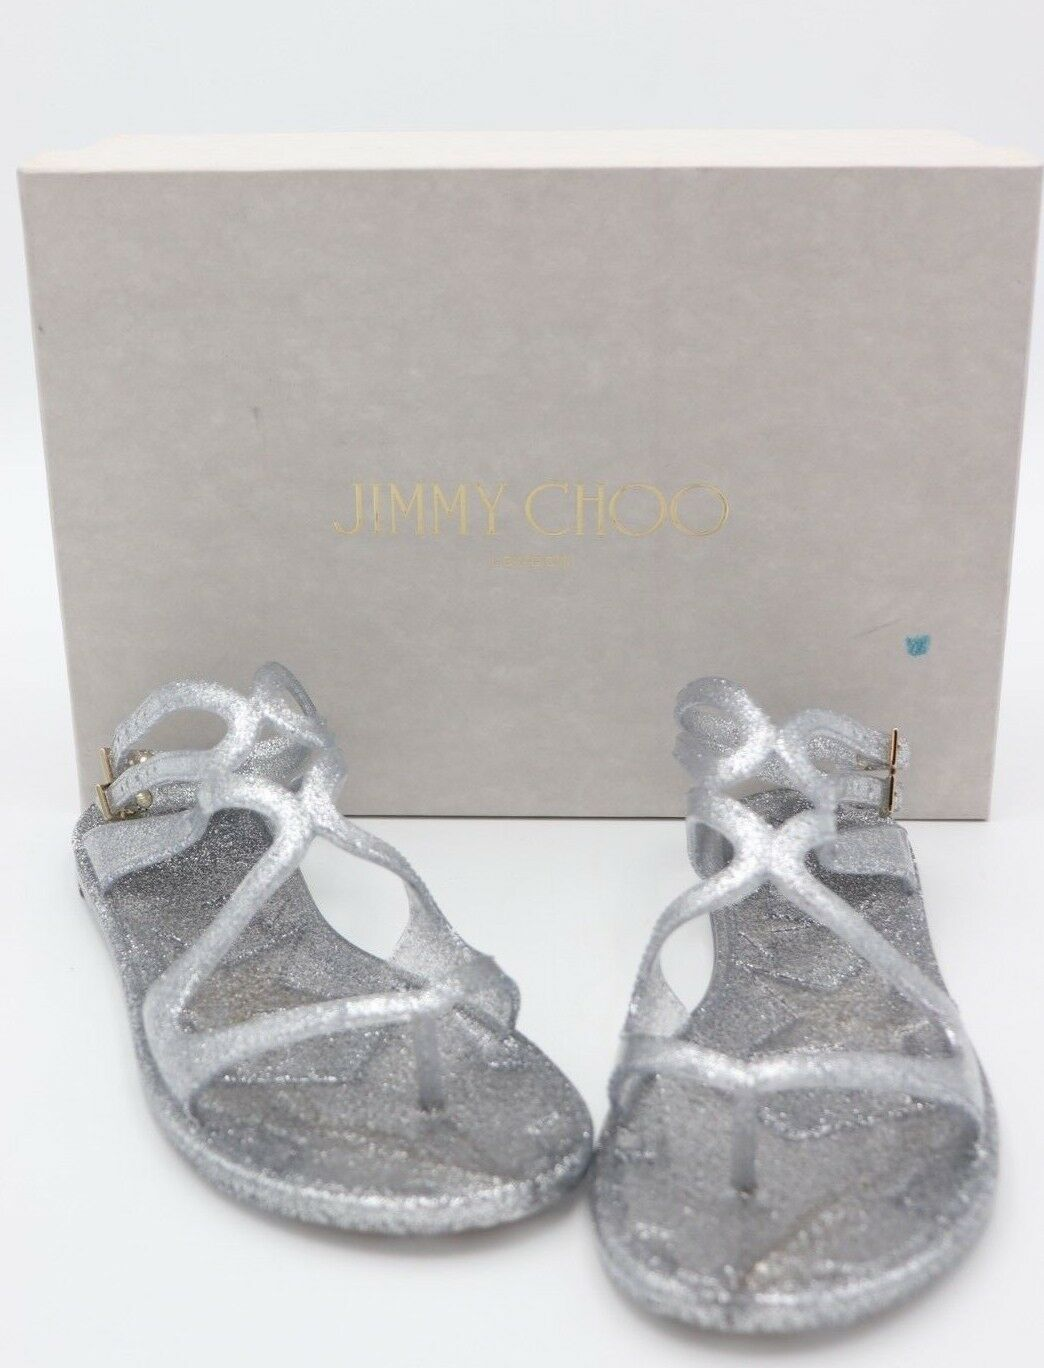 NIB Jimmy Choo Lance Silver Metallic Glitter Rubber Jelly Sandals 7 37 New